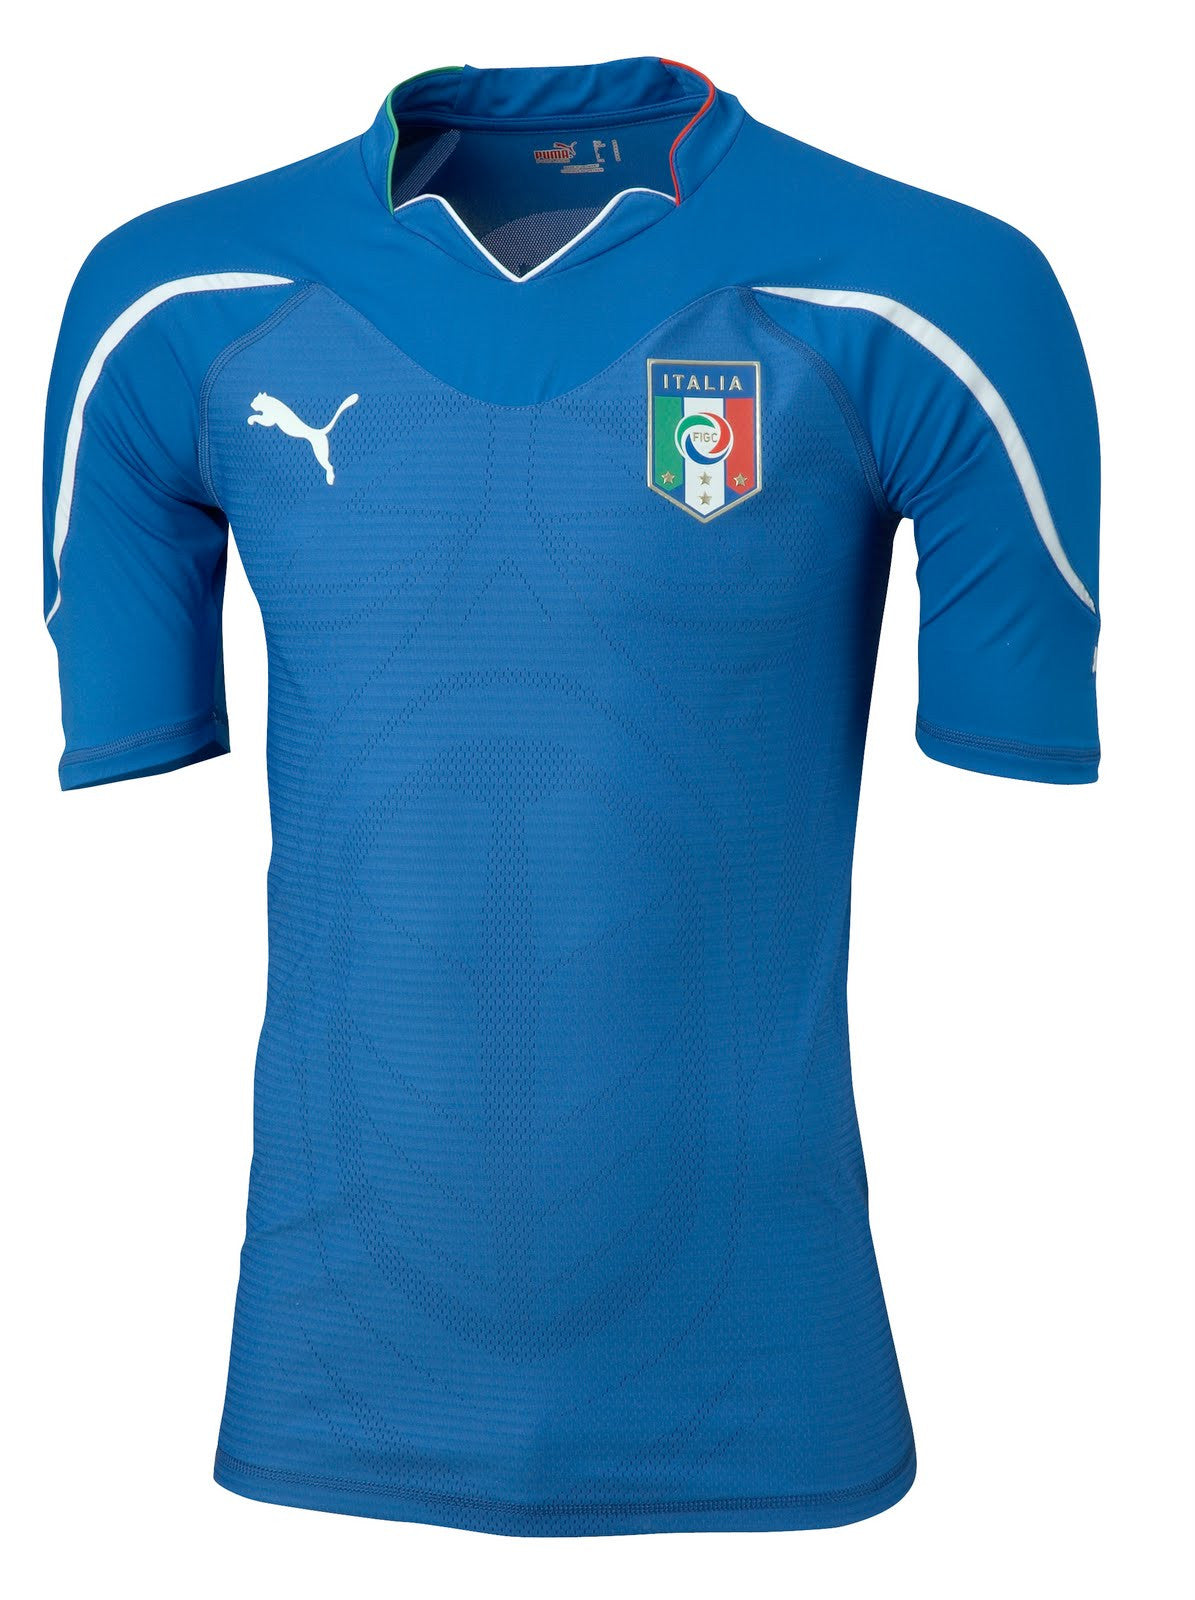 Italy Home Jersey 2010 S, Italy Soccer Jersey - Puma, G2G Sport Chicago